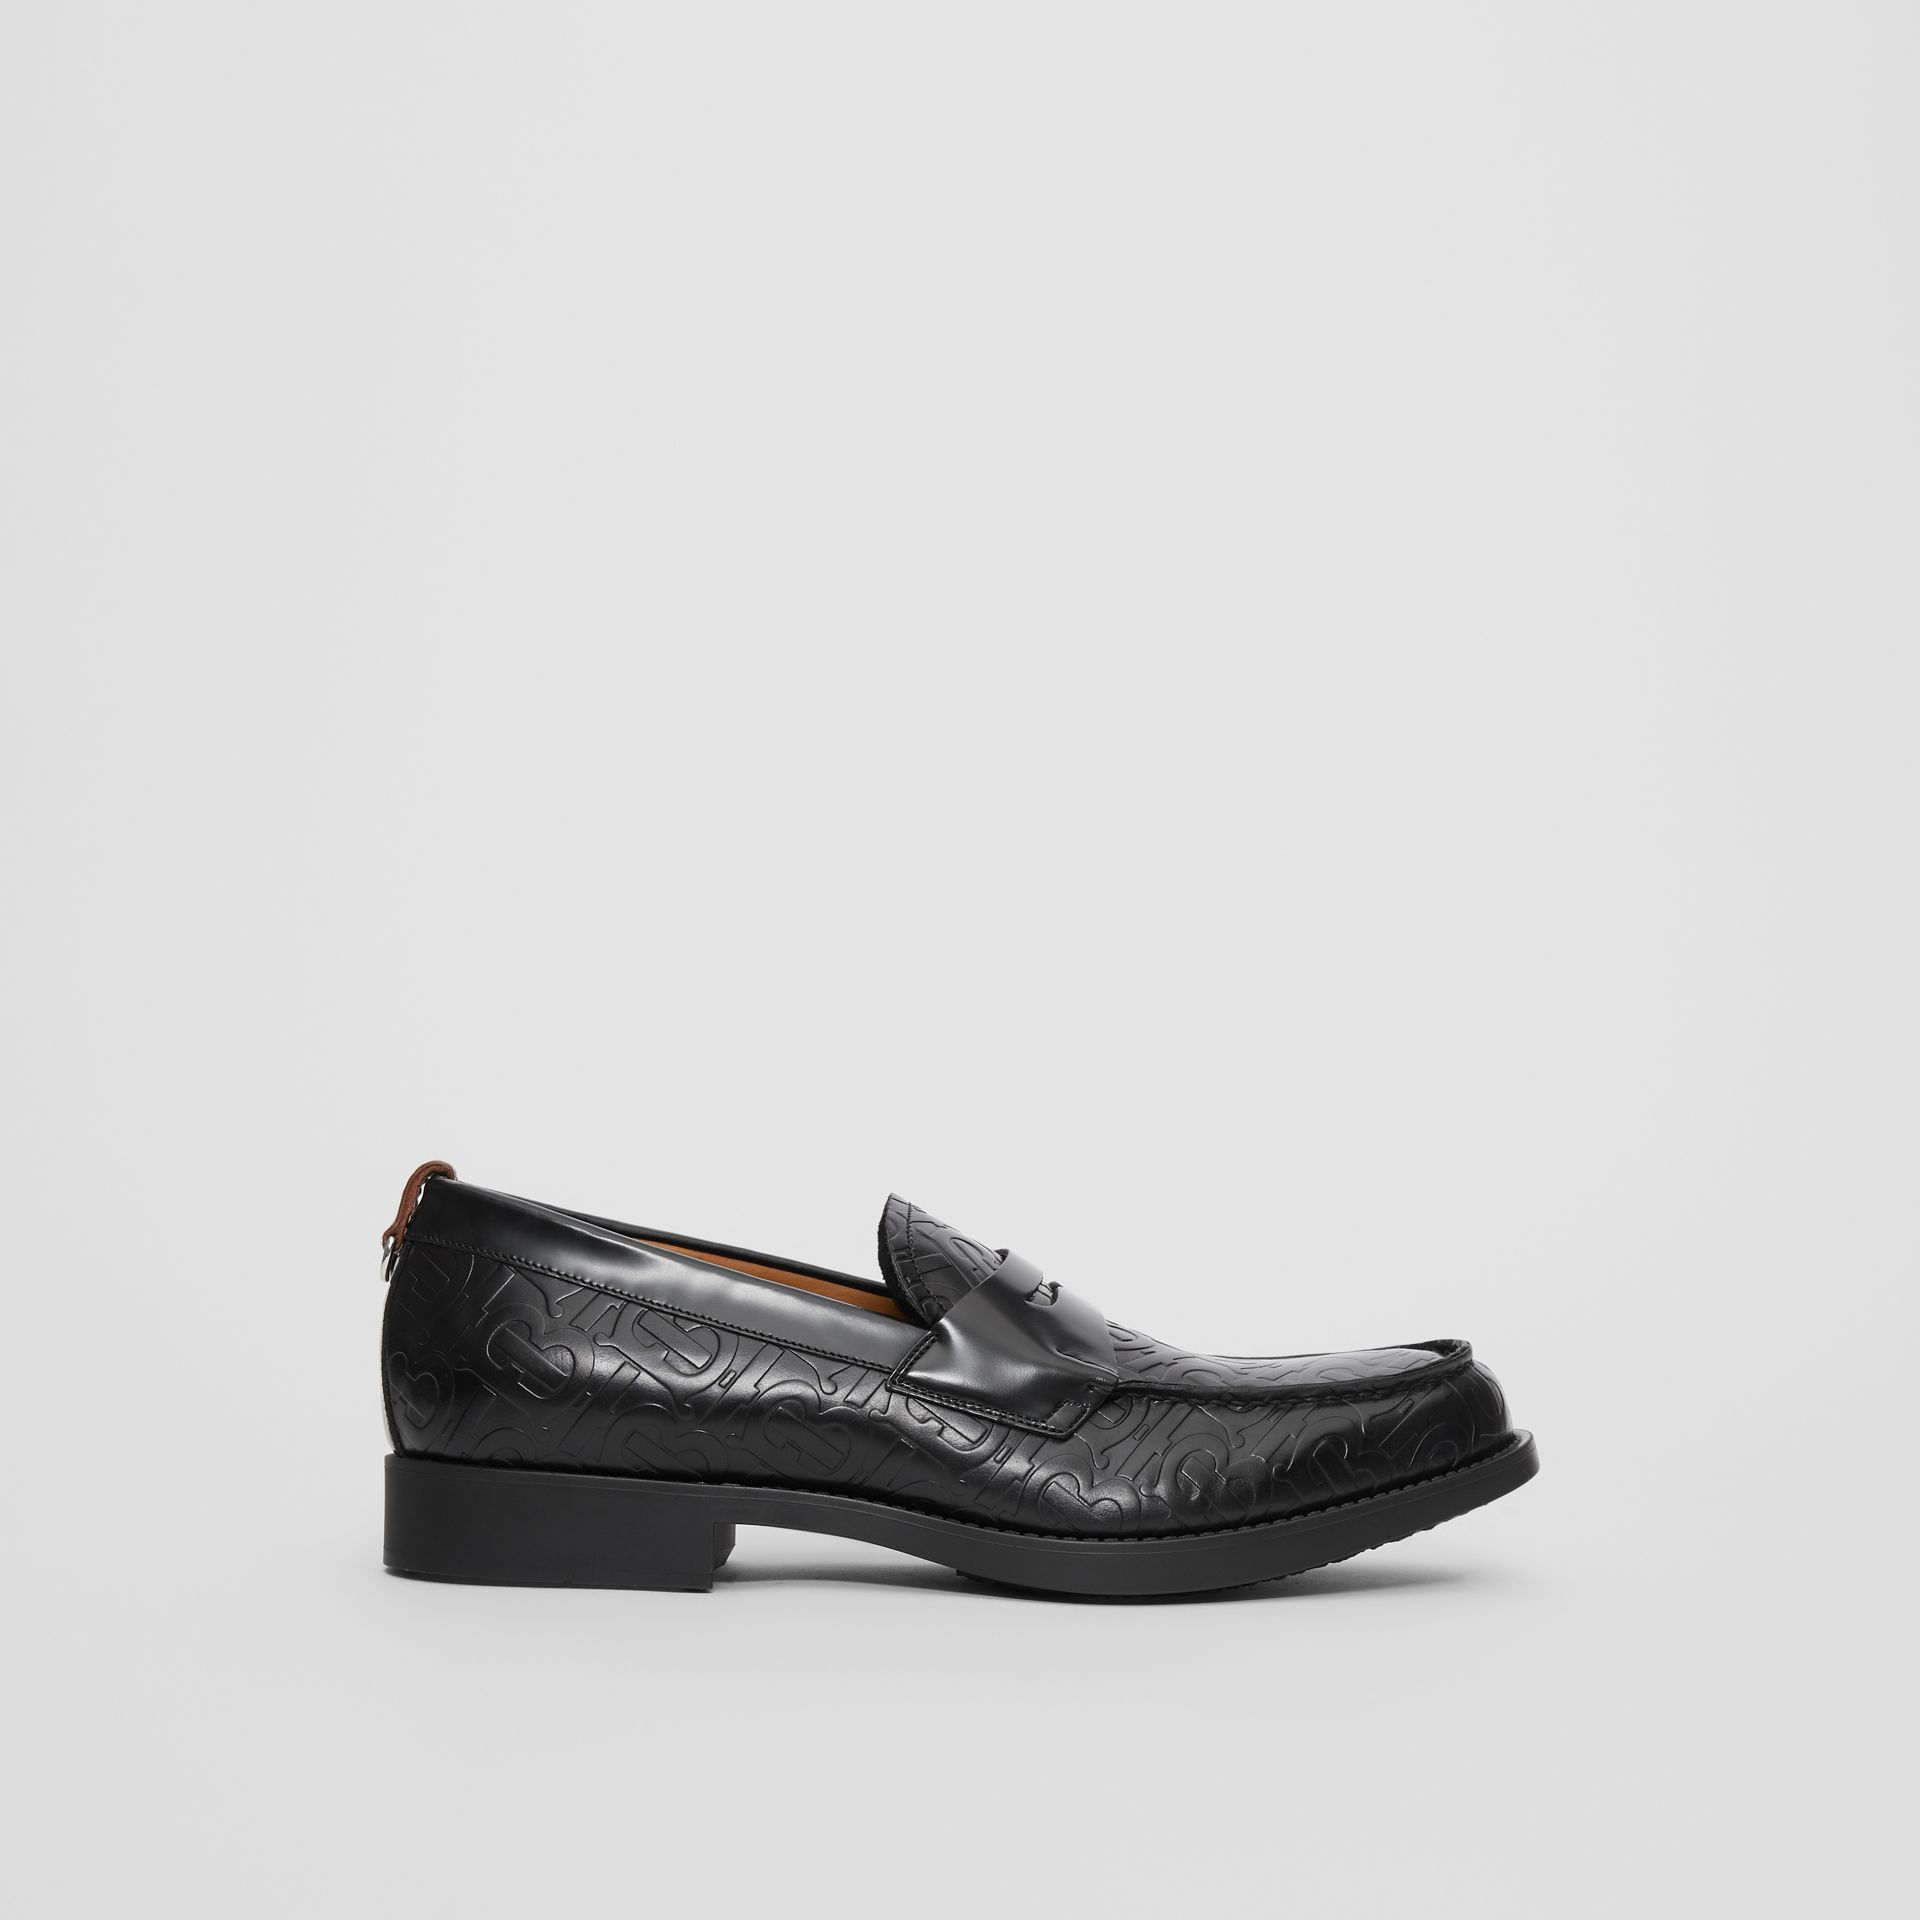 D-ring Detail Monogram Leather Loafers in Black - Men | Burberry United Kingdom - gallery image 5